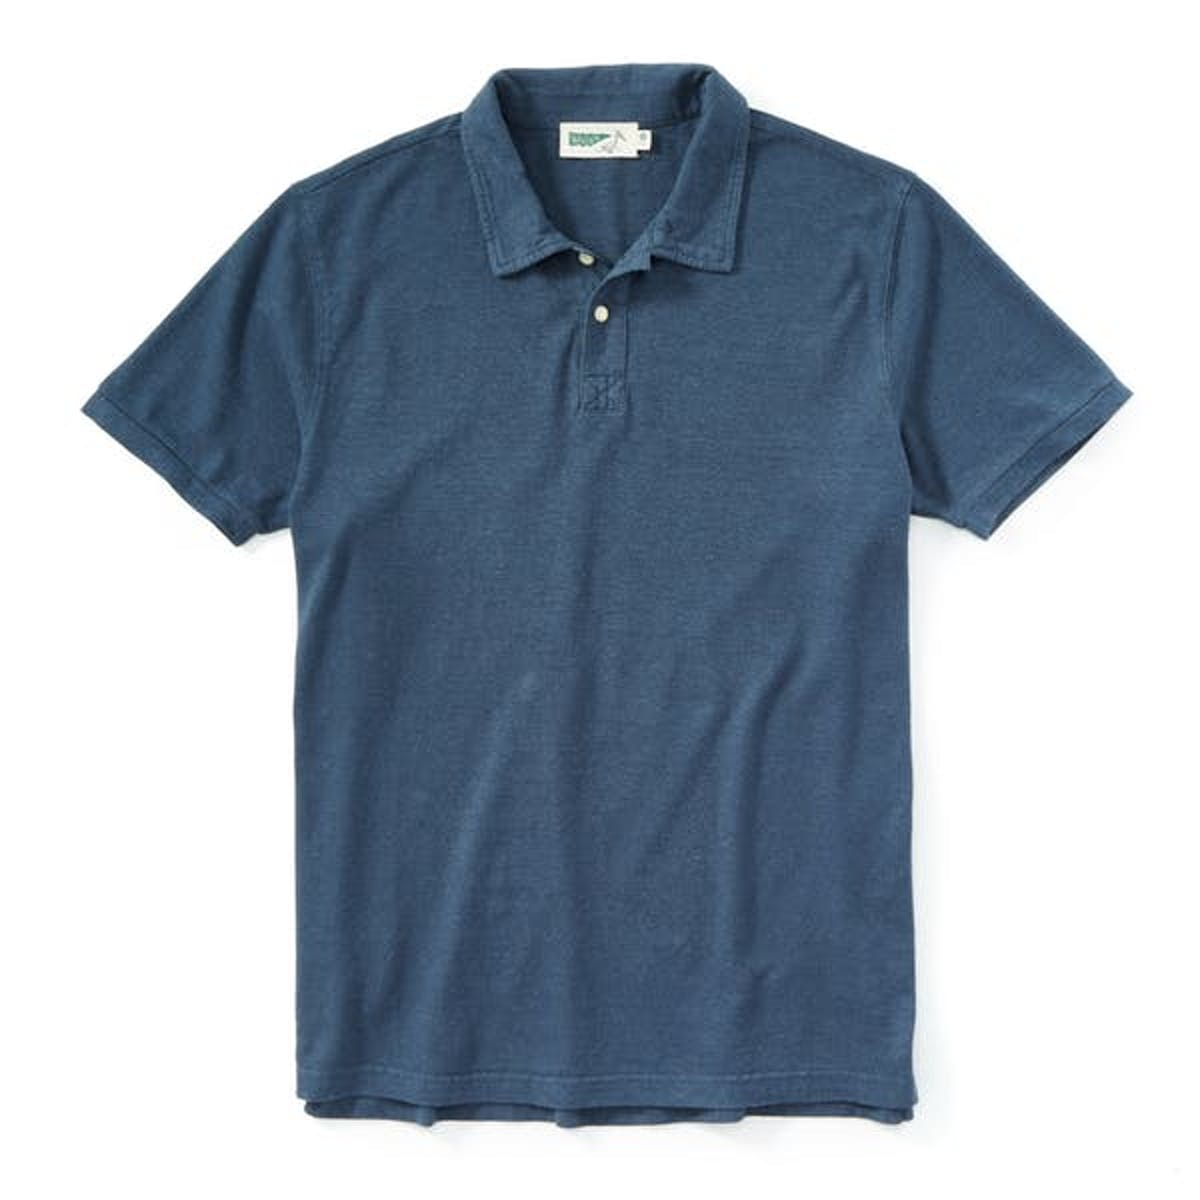 88ffeacb The Best Polos and T-Shirts for You This Summer | Inverse